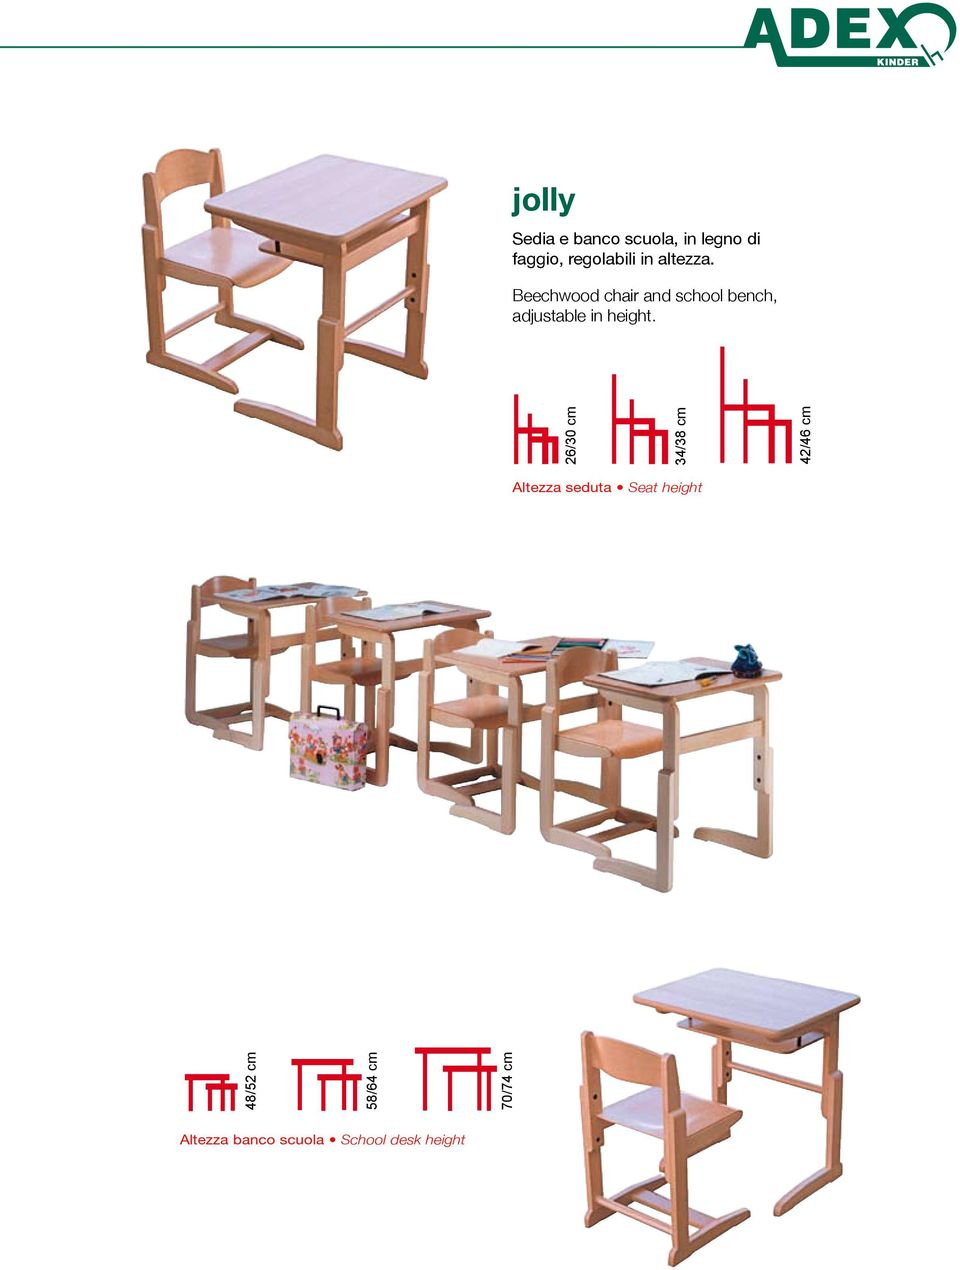 Beechwood chair and school bench, adjustable in